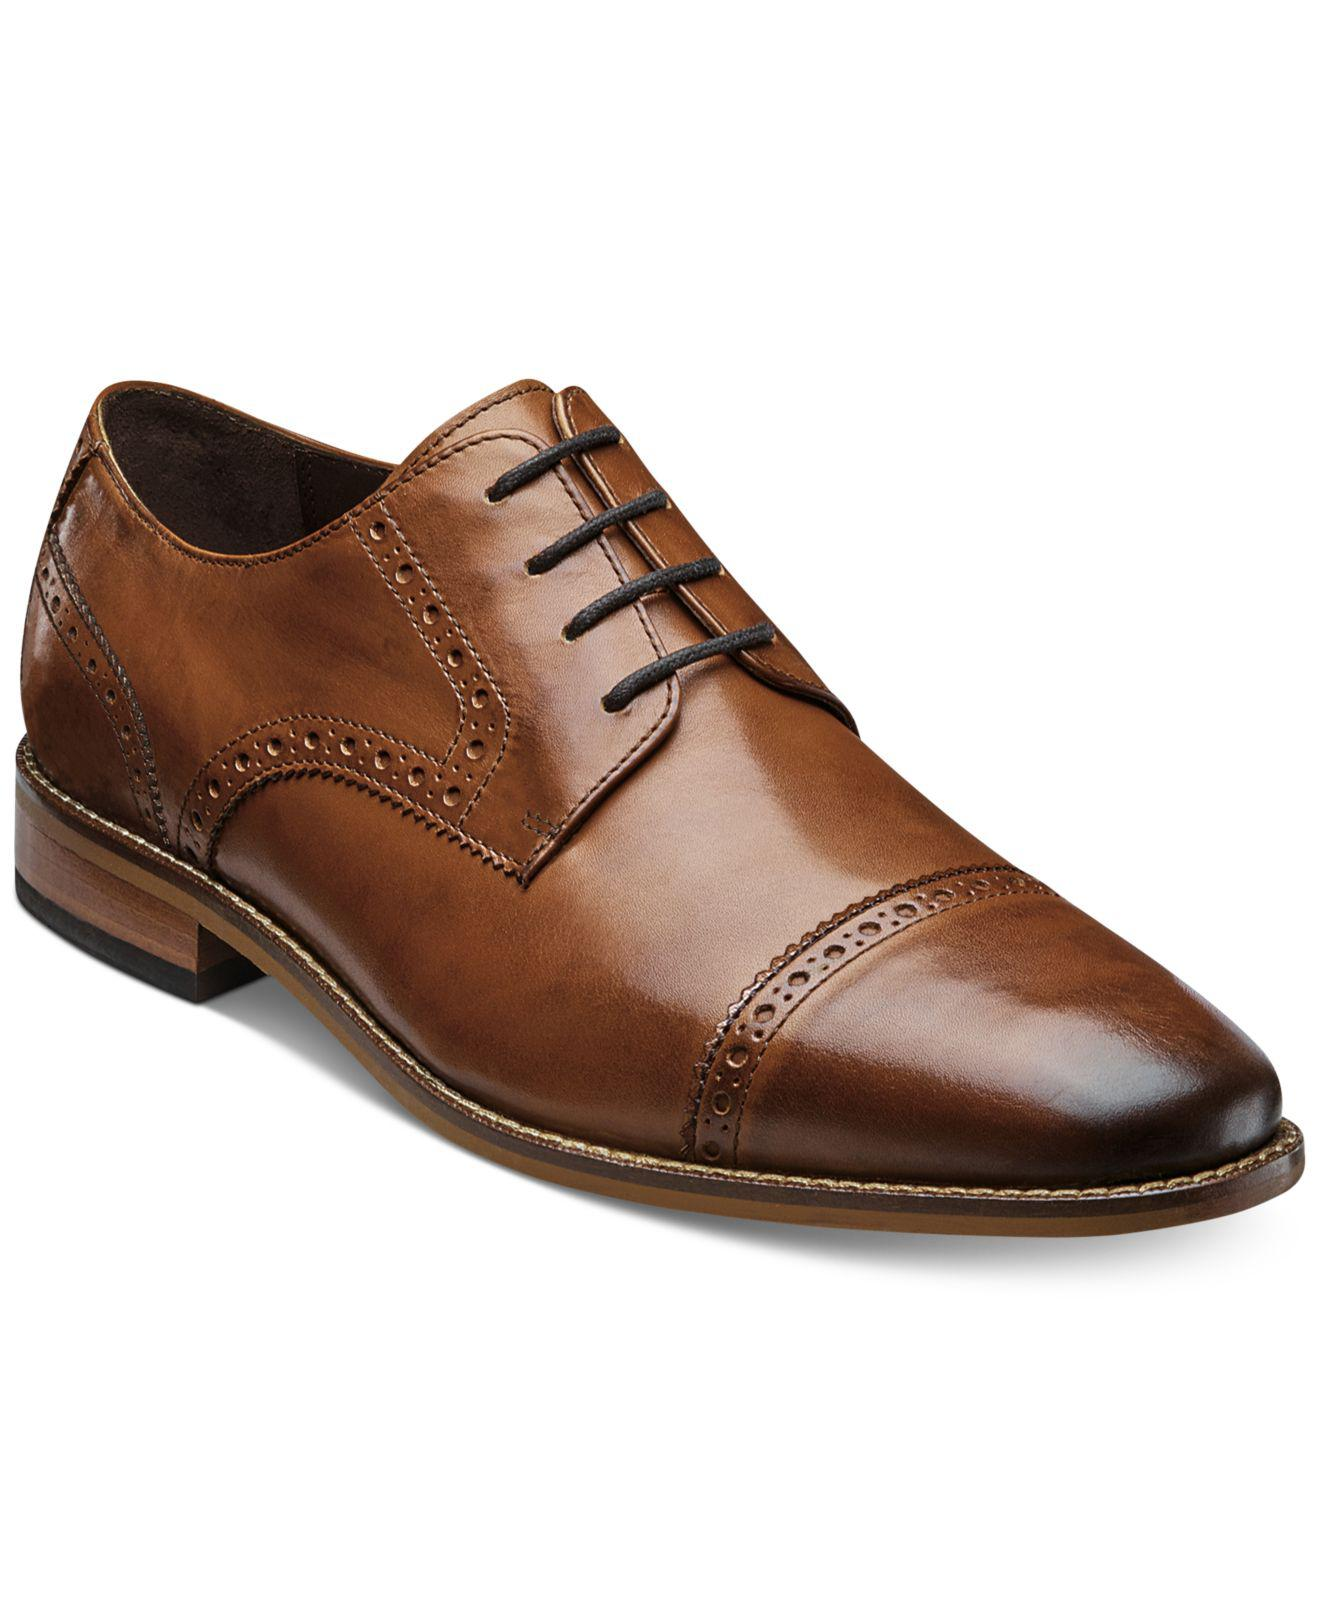 Best Mens Saddle Shoes